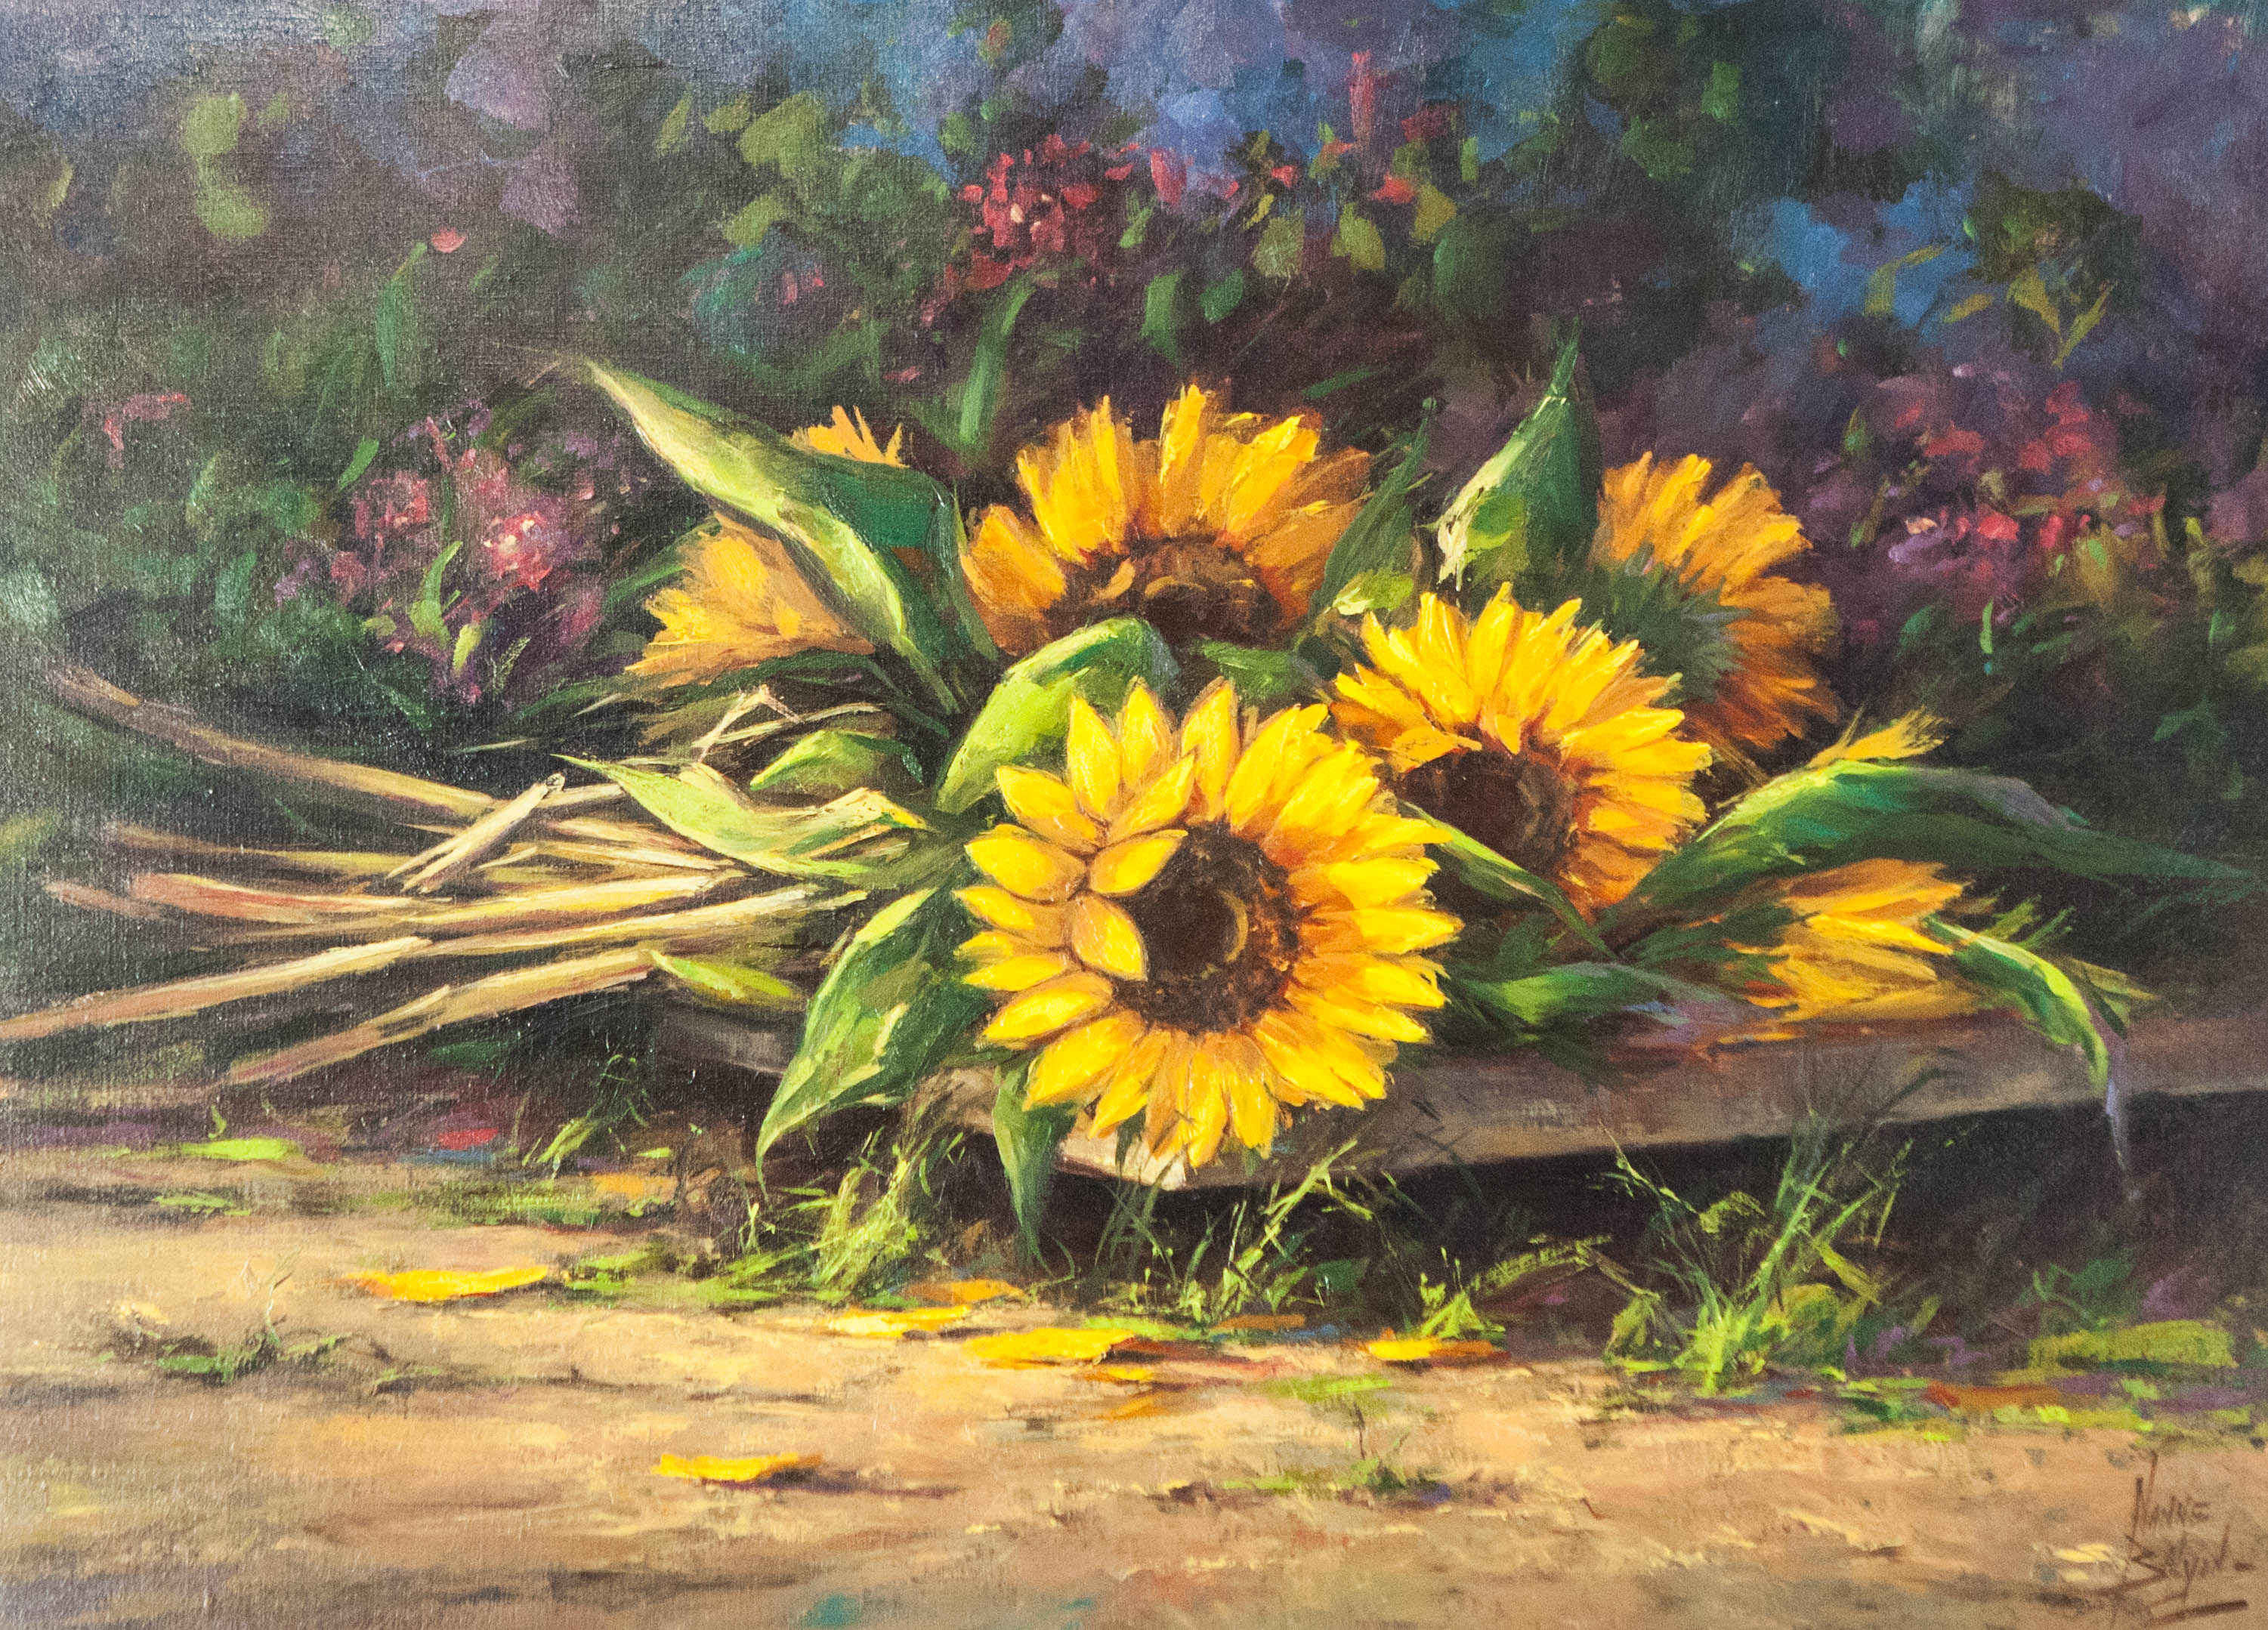 STILL LIFE W/ SUNFLOWERS